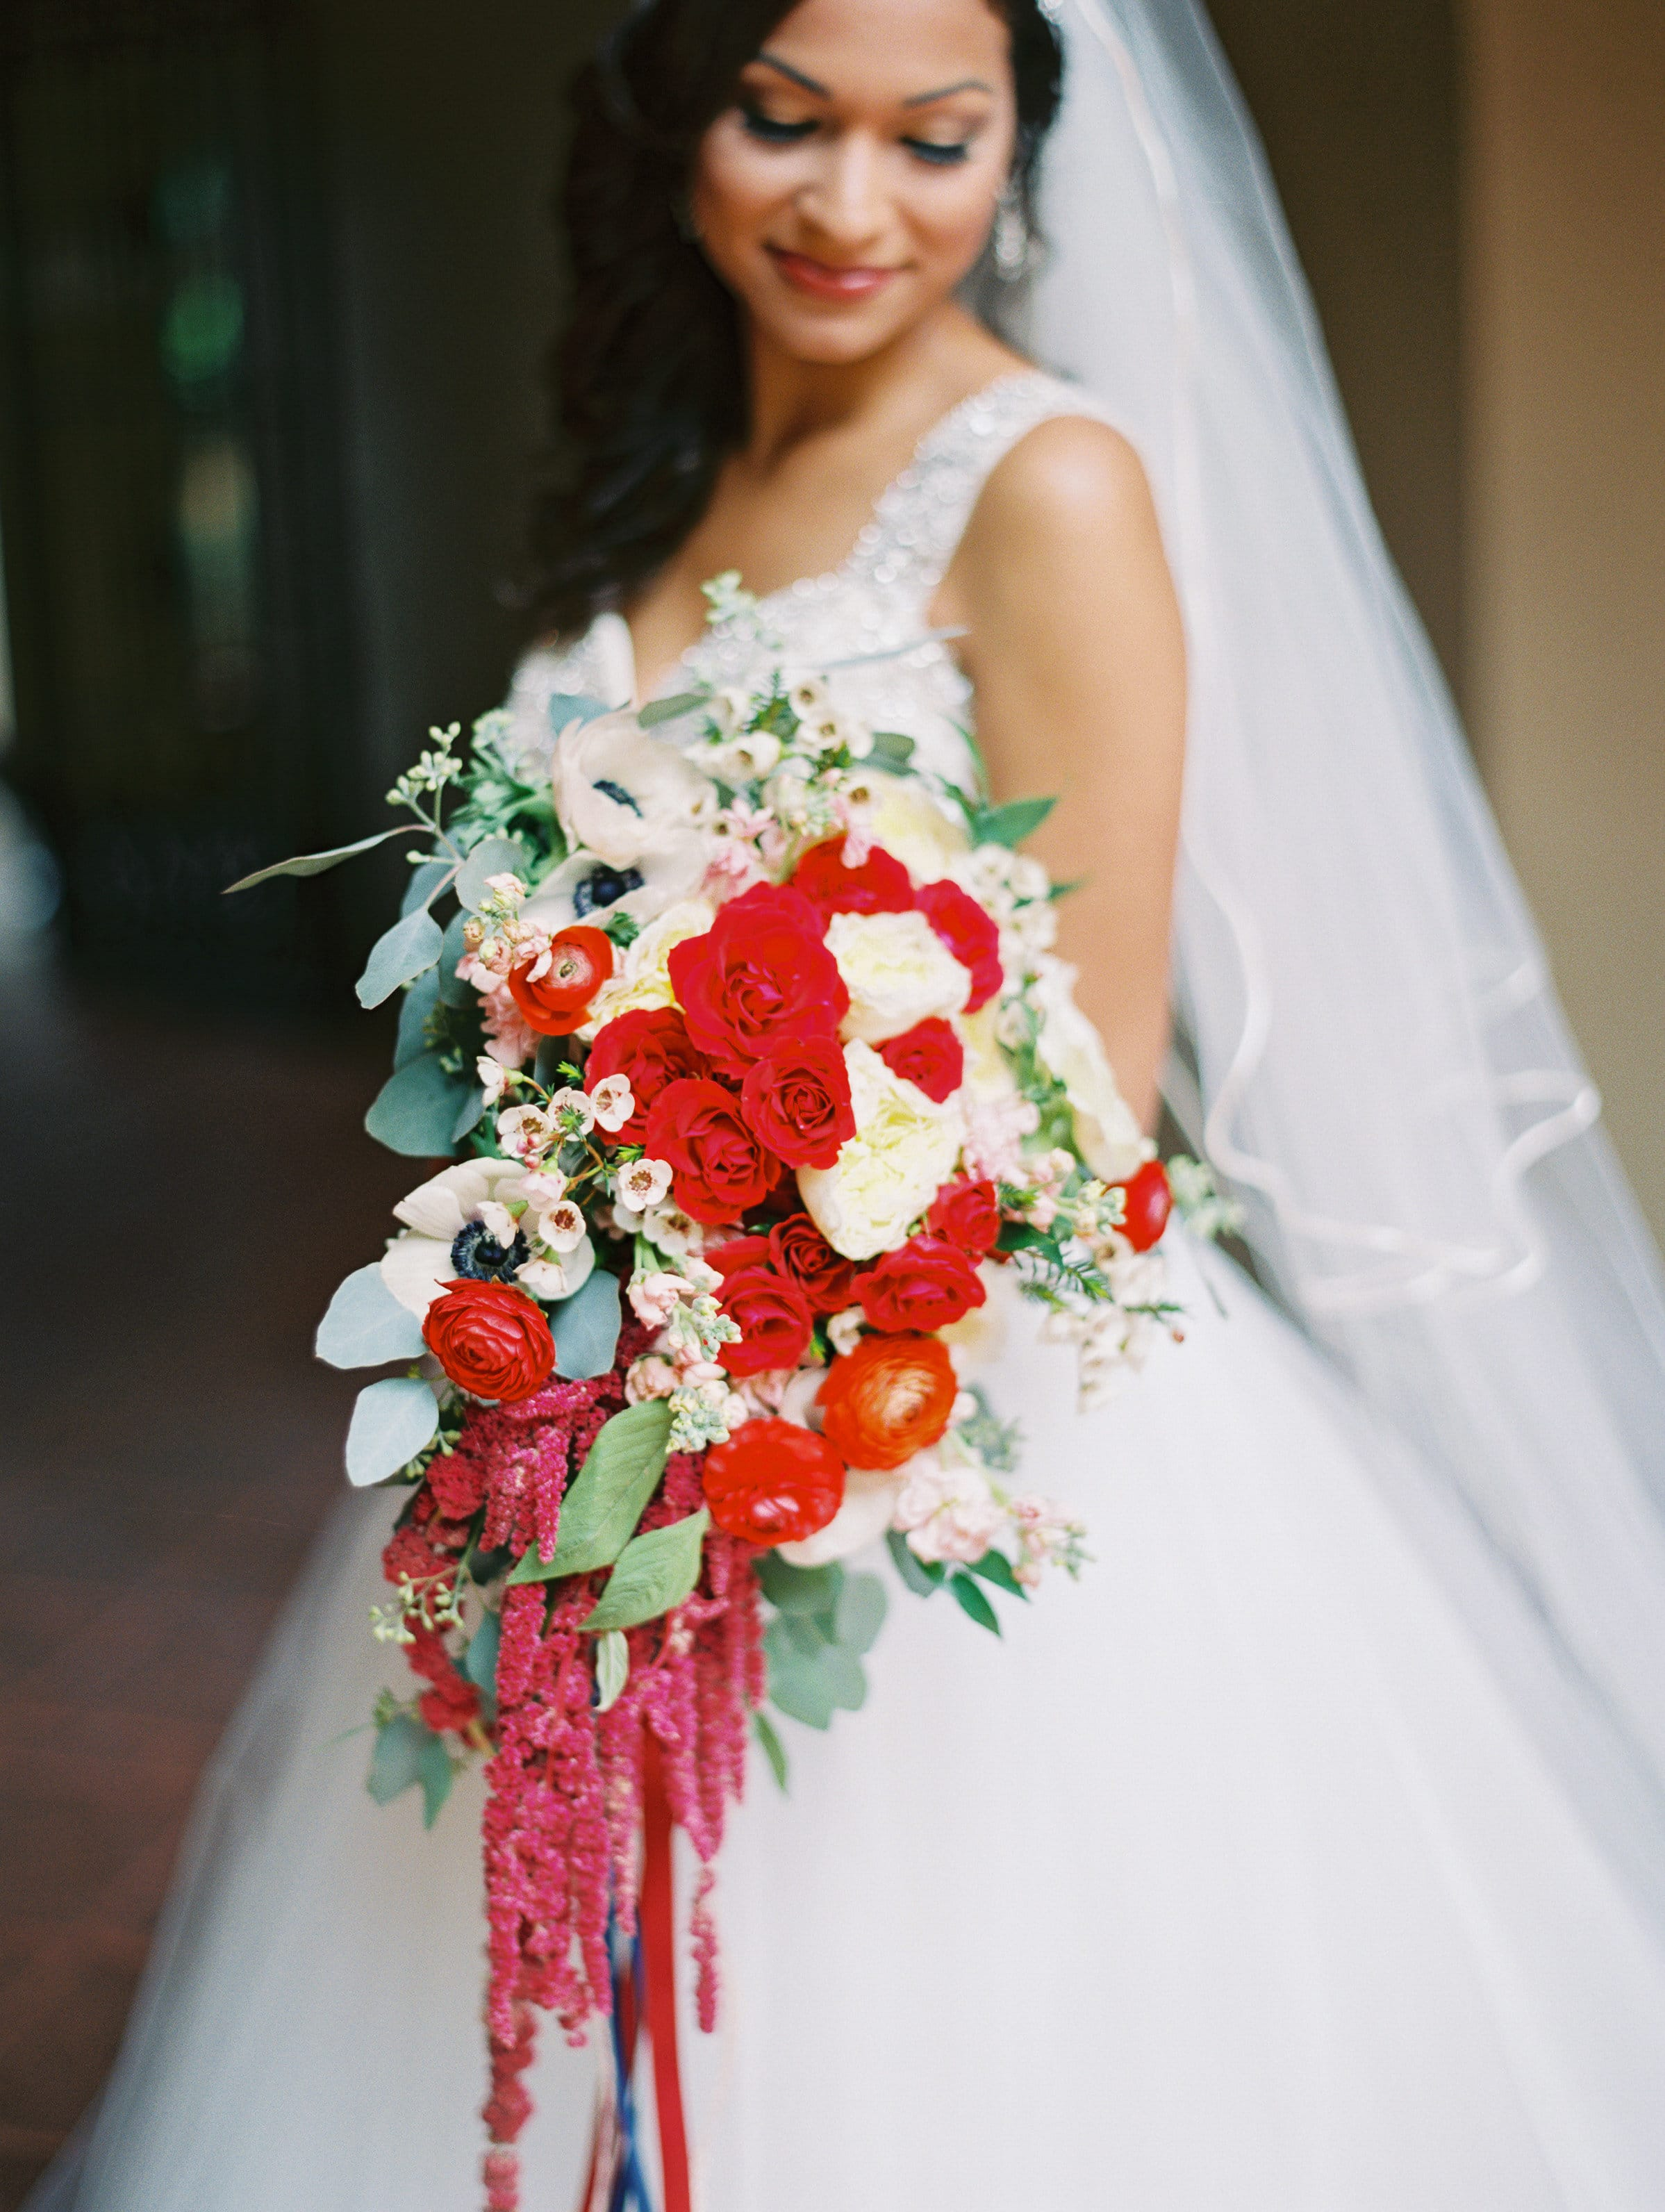 Bride Holding Romantic Red Wedding Bouquet